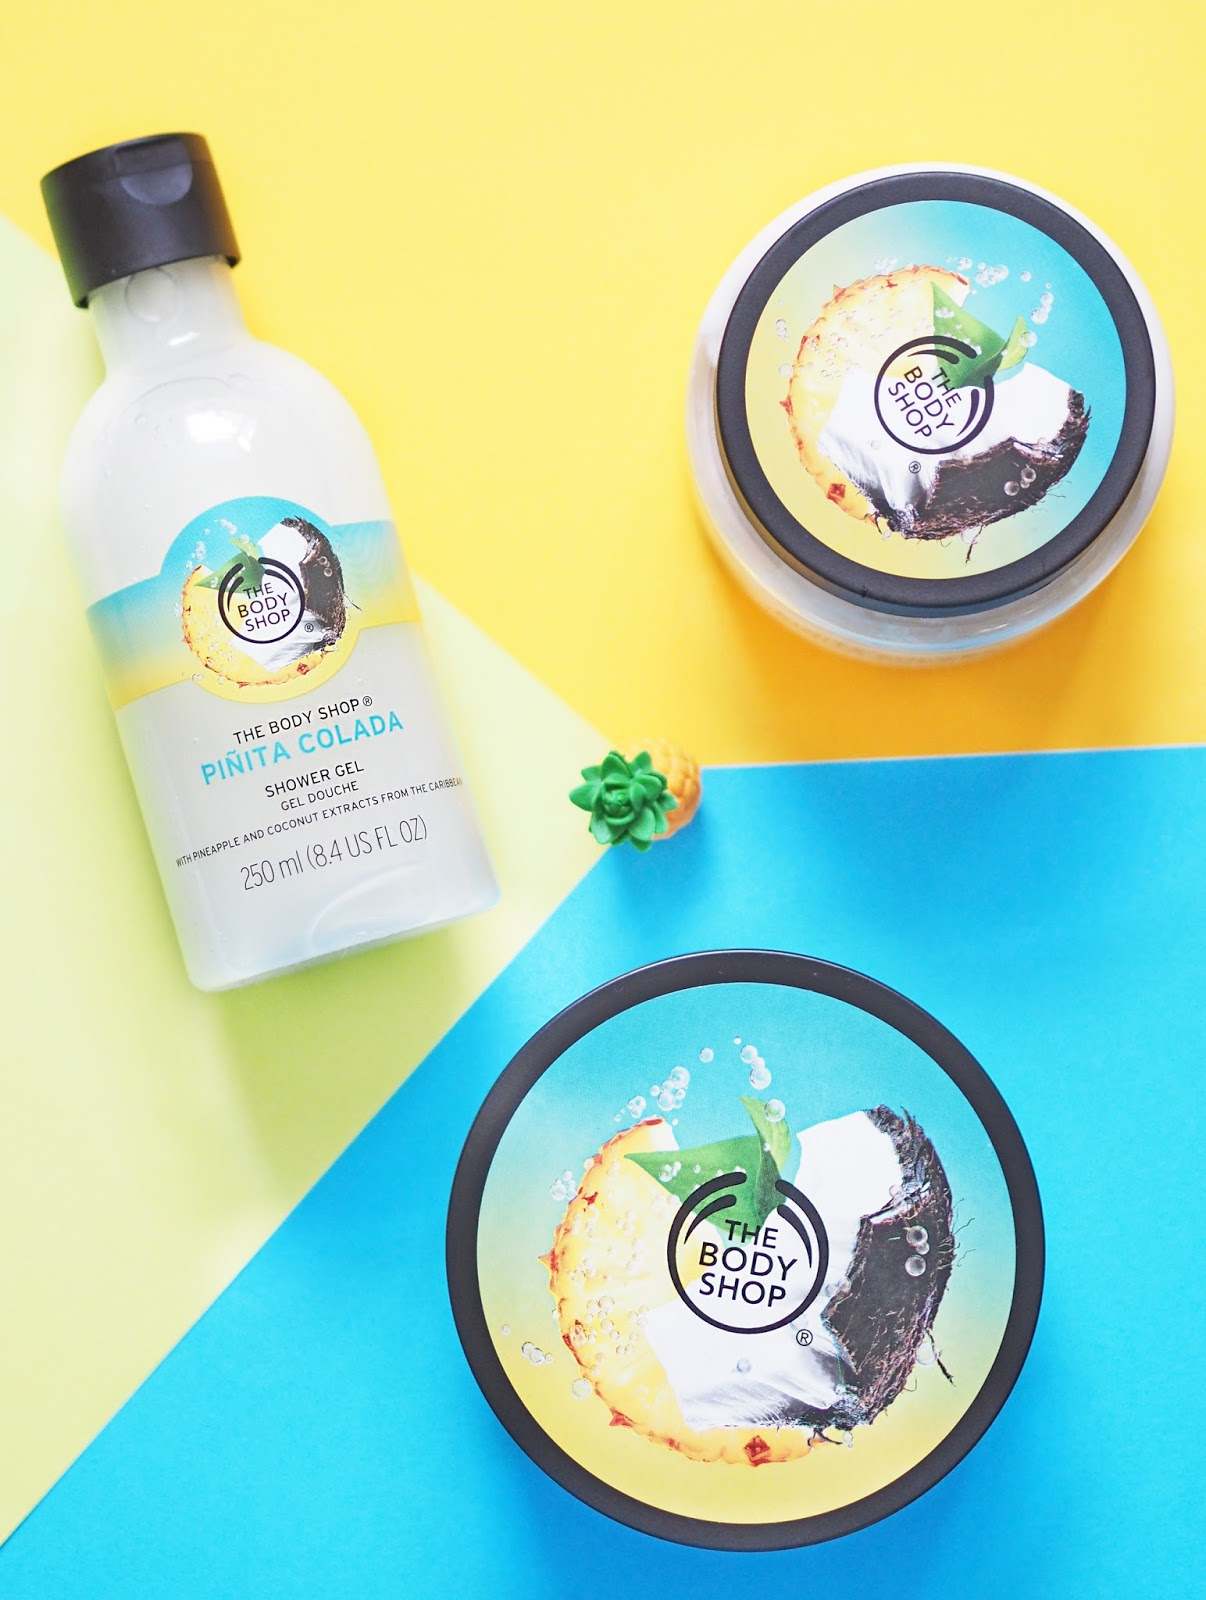 The Body Shop Piñita Colada Review